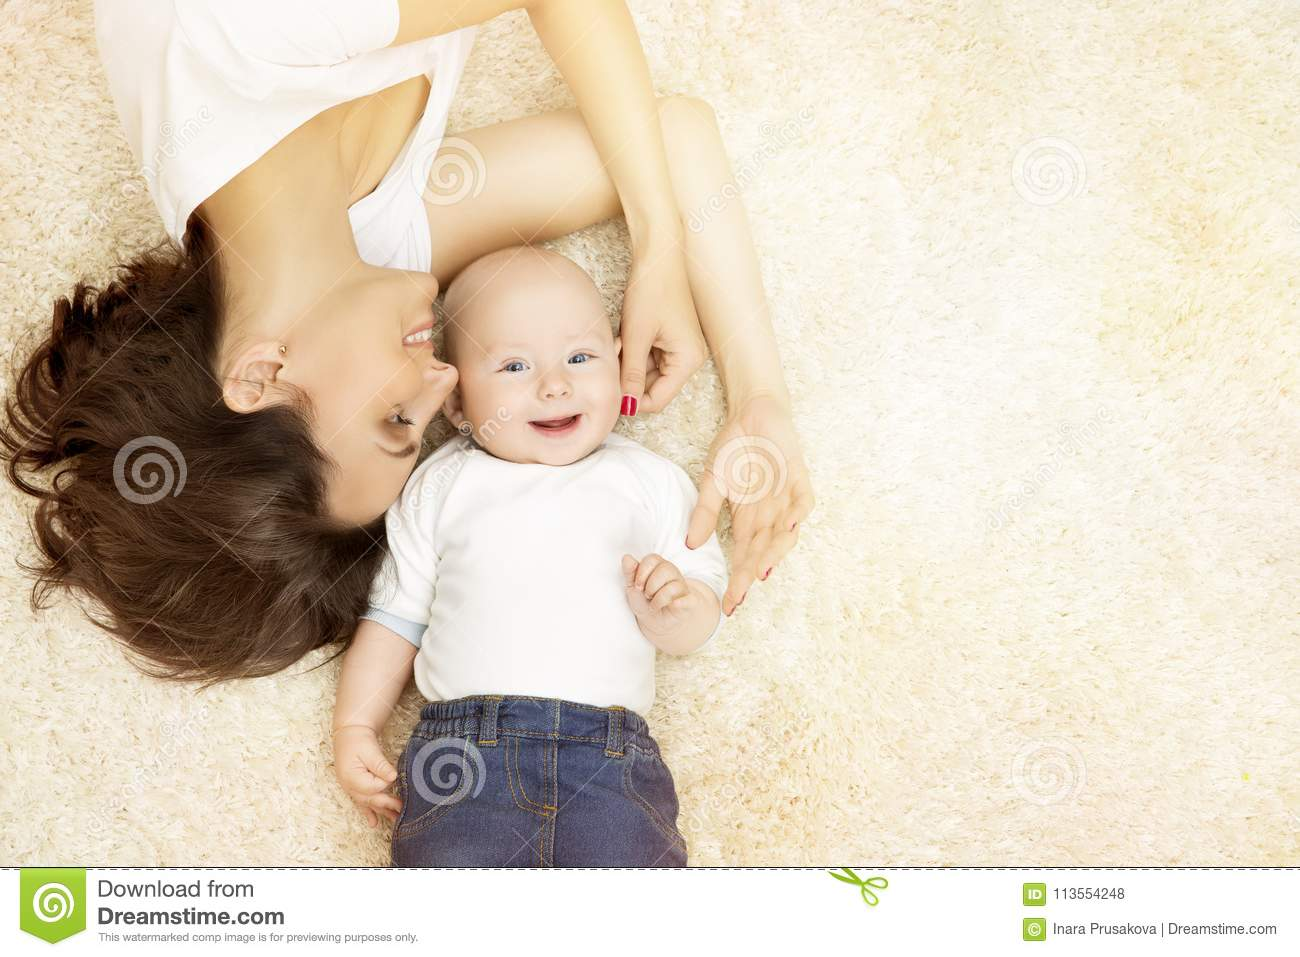 Mother and Baby lying on Carpet, Happy Family Portrait, Kid Boy